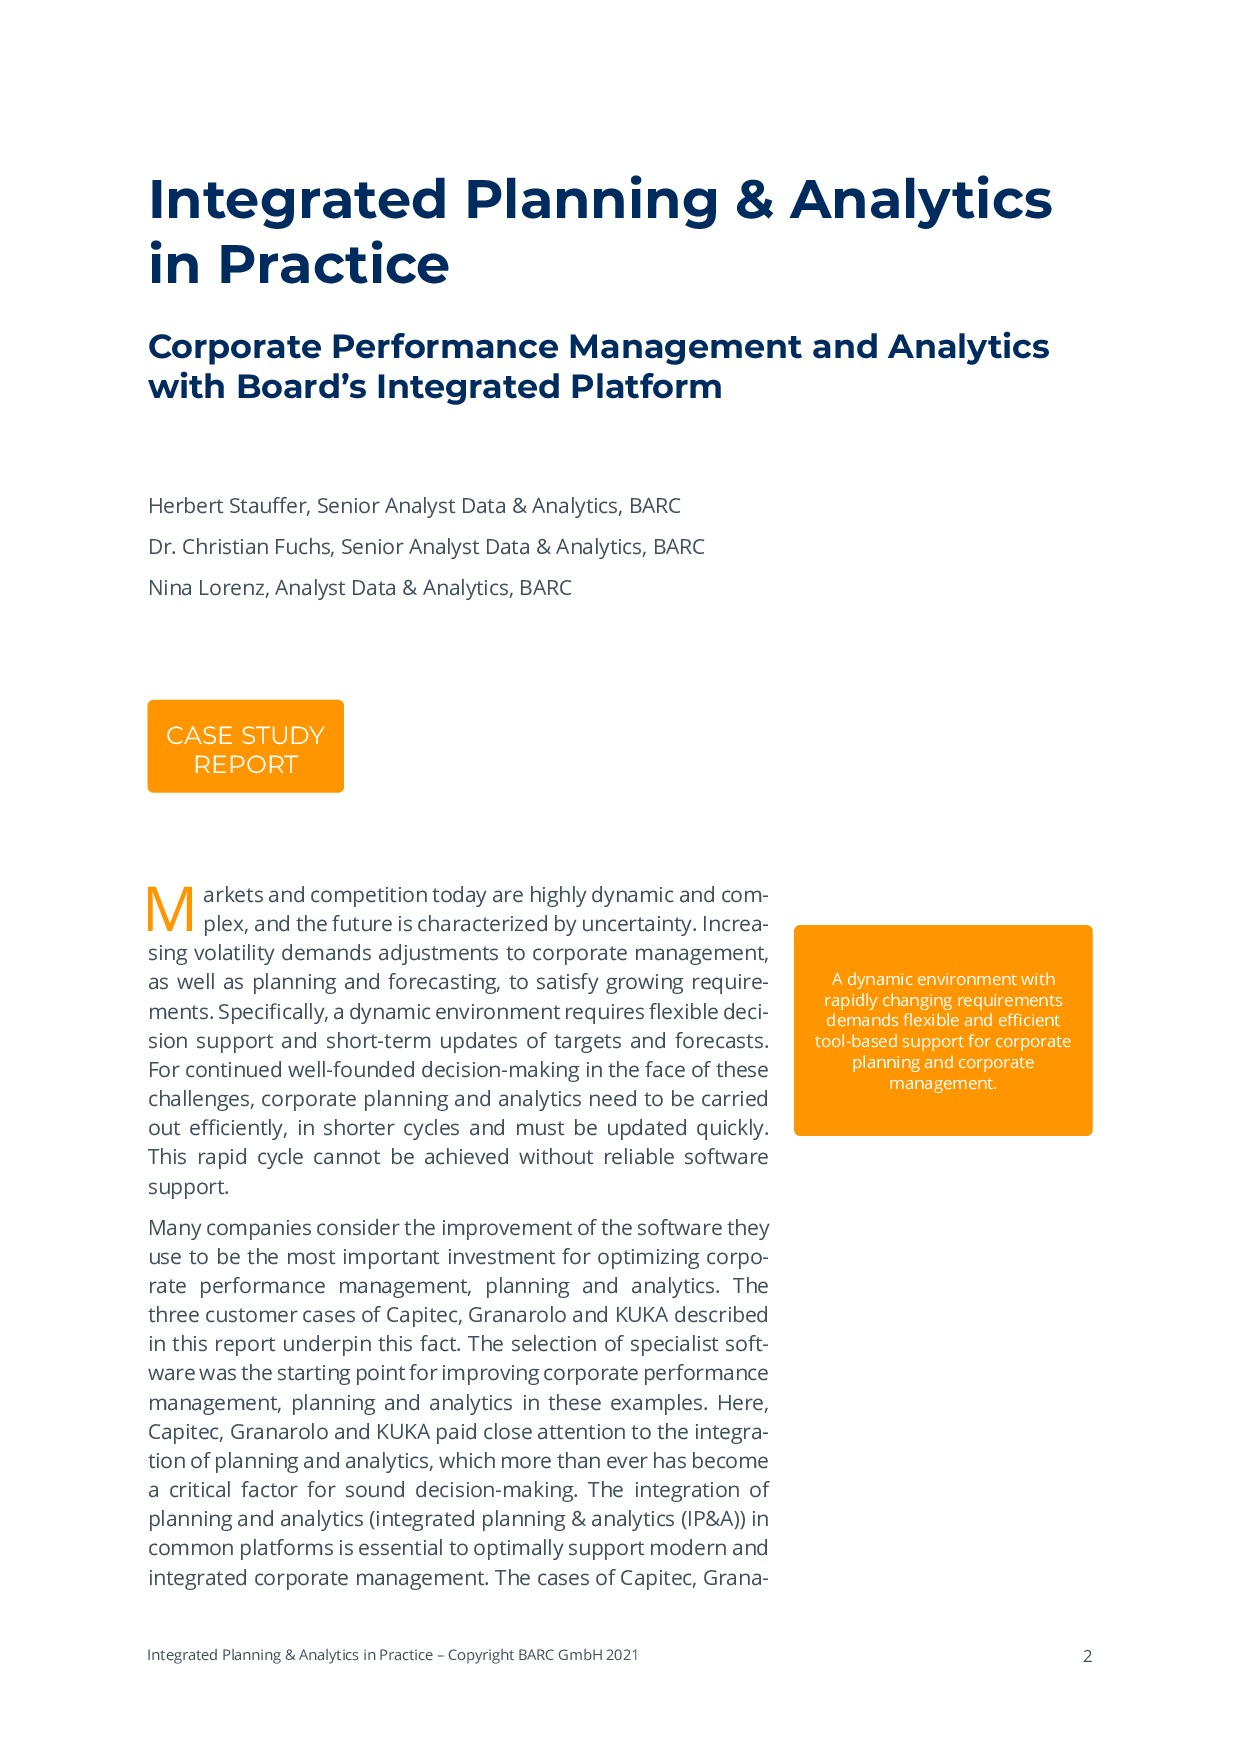 BARC - Integrated Planning & Analytics in Practice   Page 2